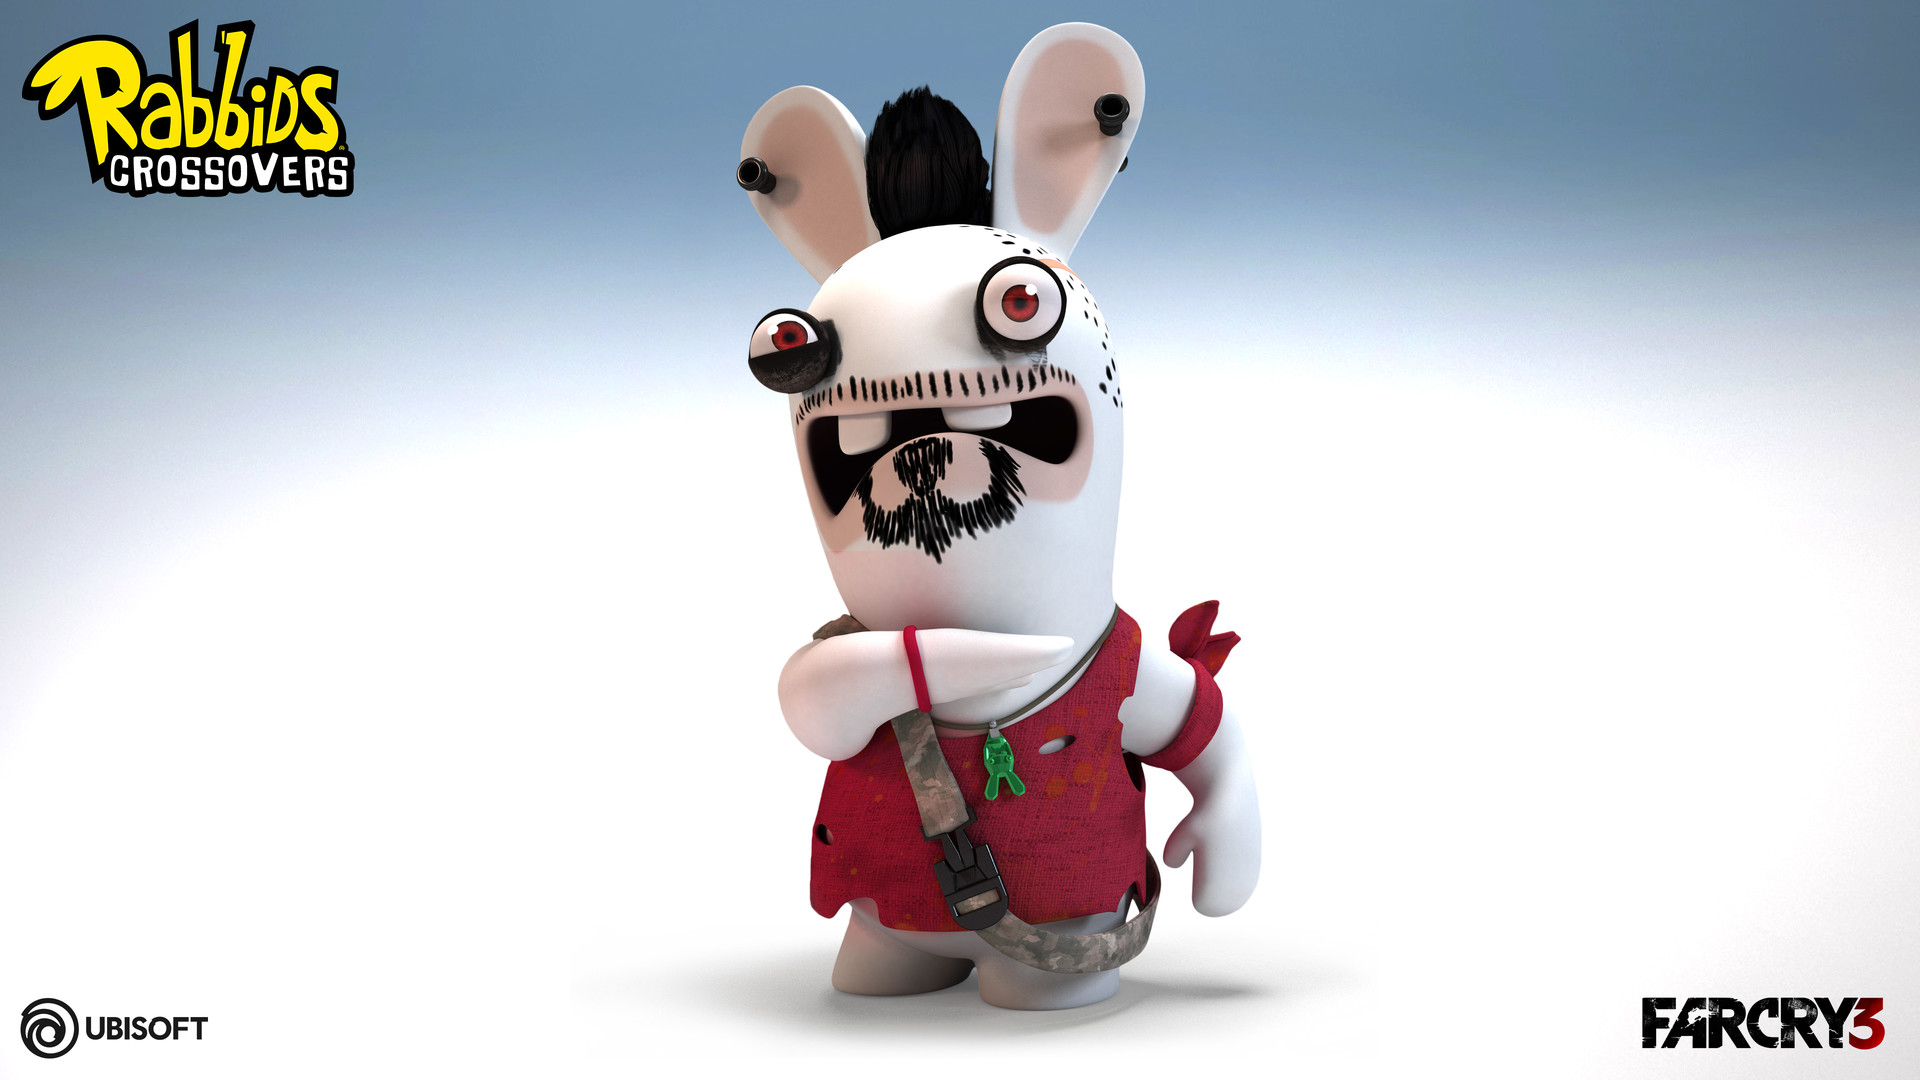 Thomas veyrat rbd rabbids crossovers fc